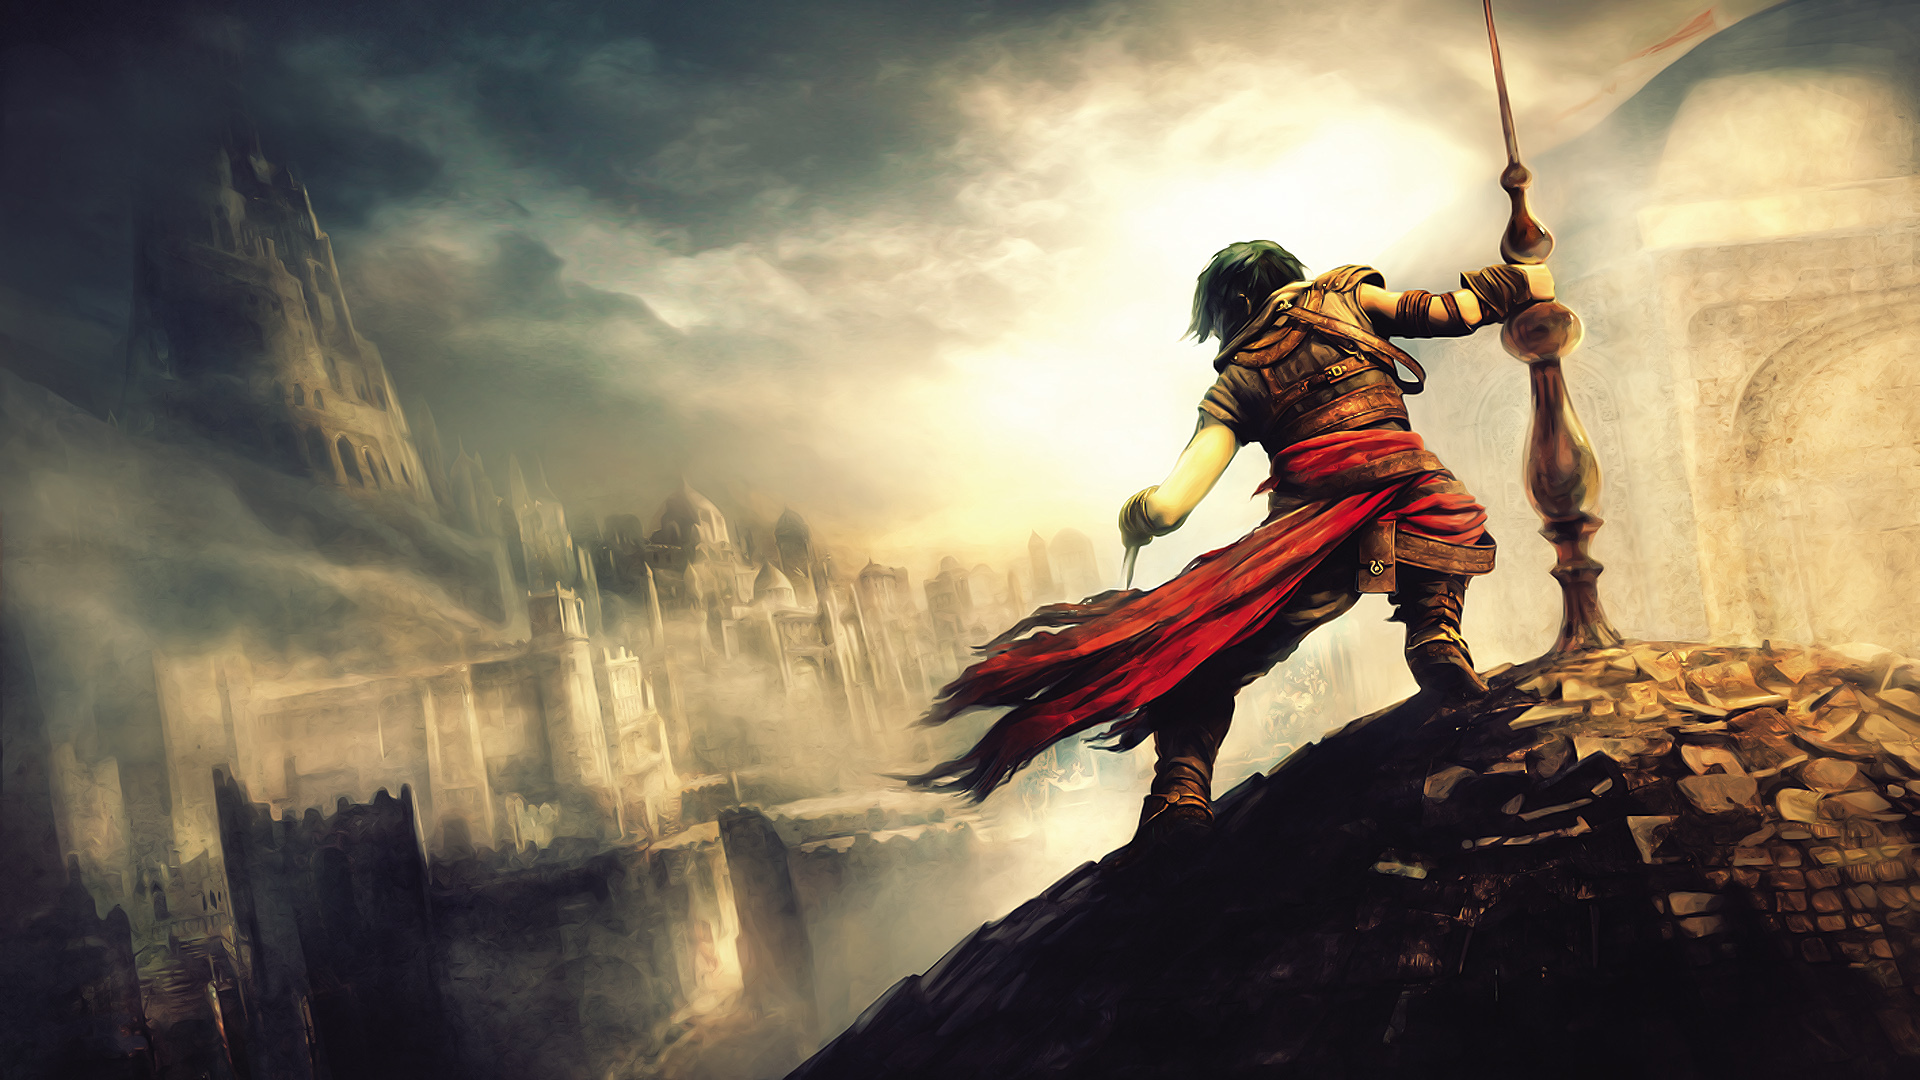 Prince Of Persia Artwork 609.12 Kb